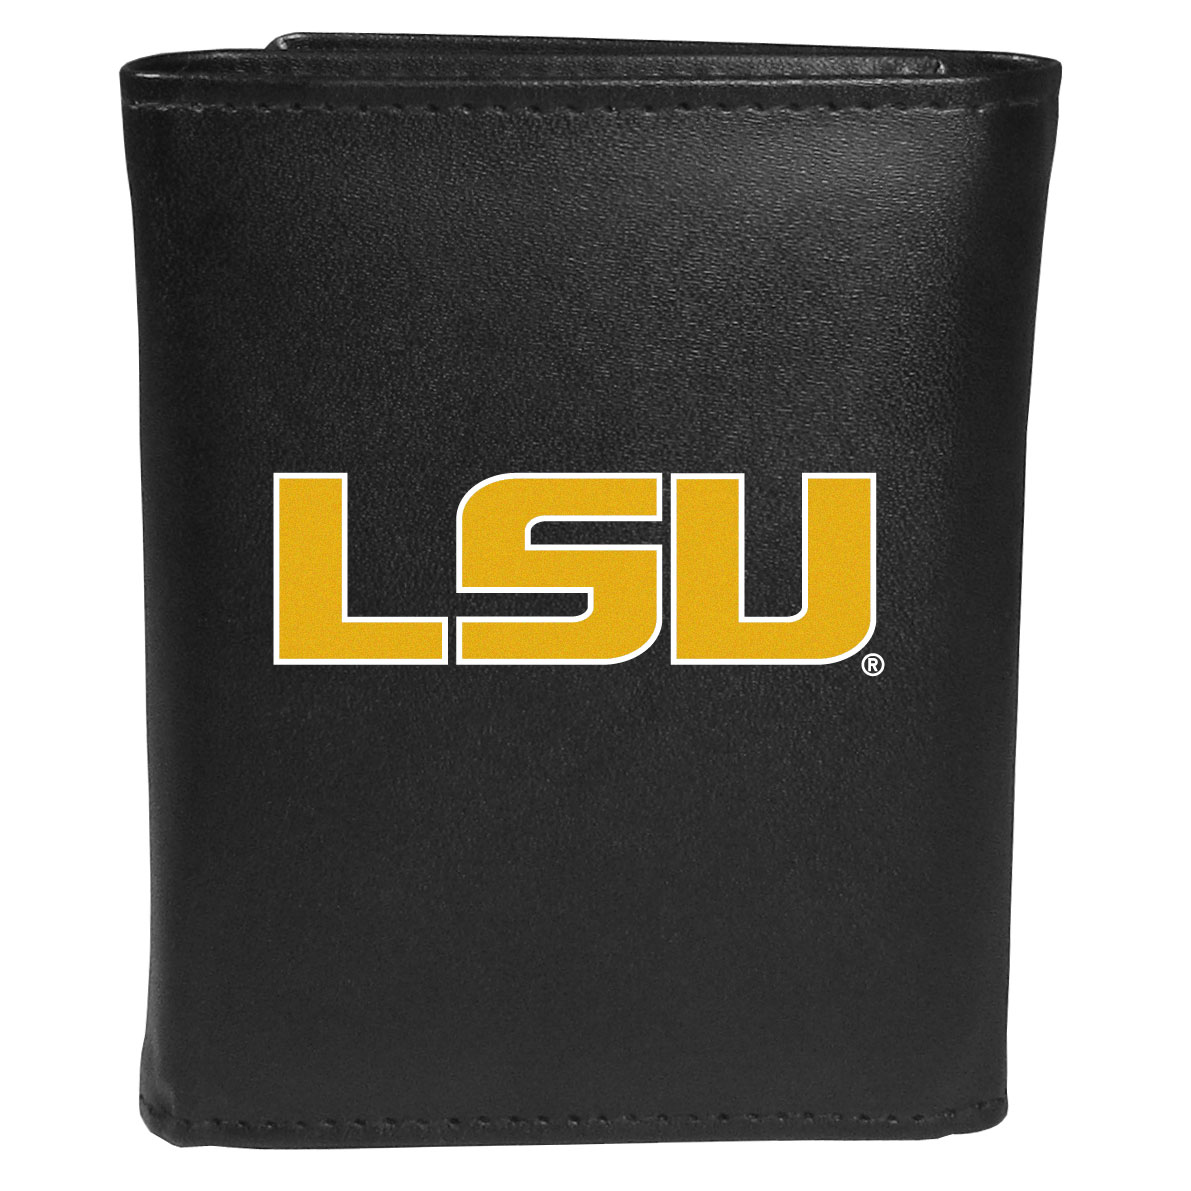 LSU Tigers Leather Tri-fold Wallet, Large Logo - Our classic fine leather tri-fold wallet is meticulously crafted with genuine leather that will age beautifully so you will have a quality wallet for years to come. This is fan apparel at its finest. The wallet is packed with organizational  features; lots of credit card slots, large billfold pocket, and a window ID slot. The front of the wallet features an extra large LSU Tigers printed logo.